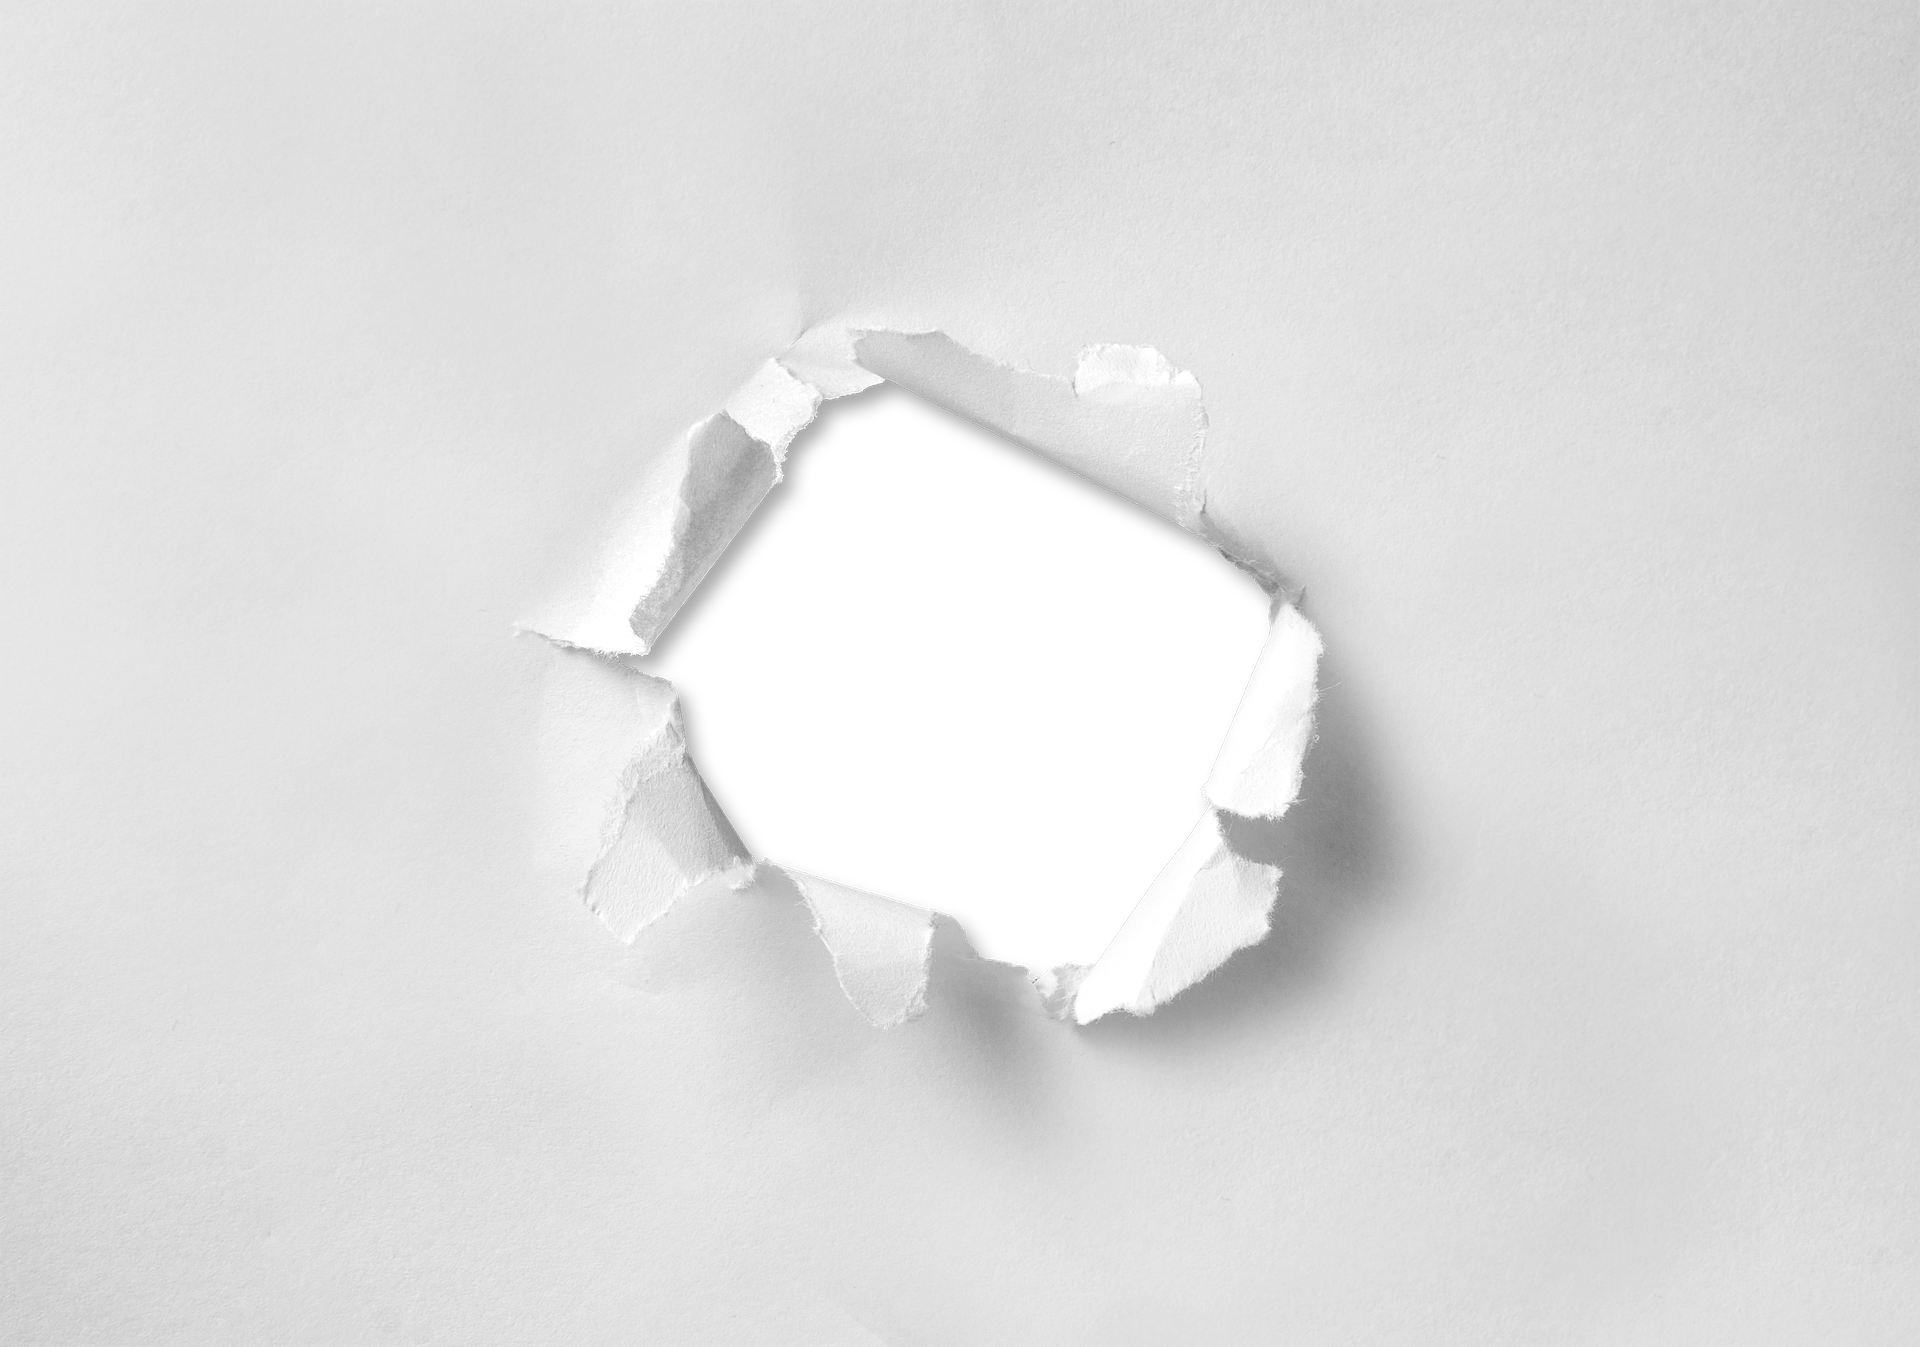 Paper hole png. Free photo in the